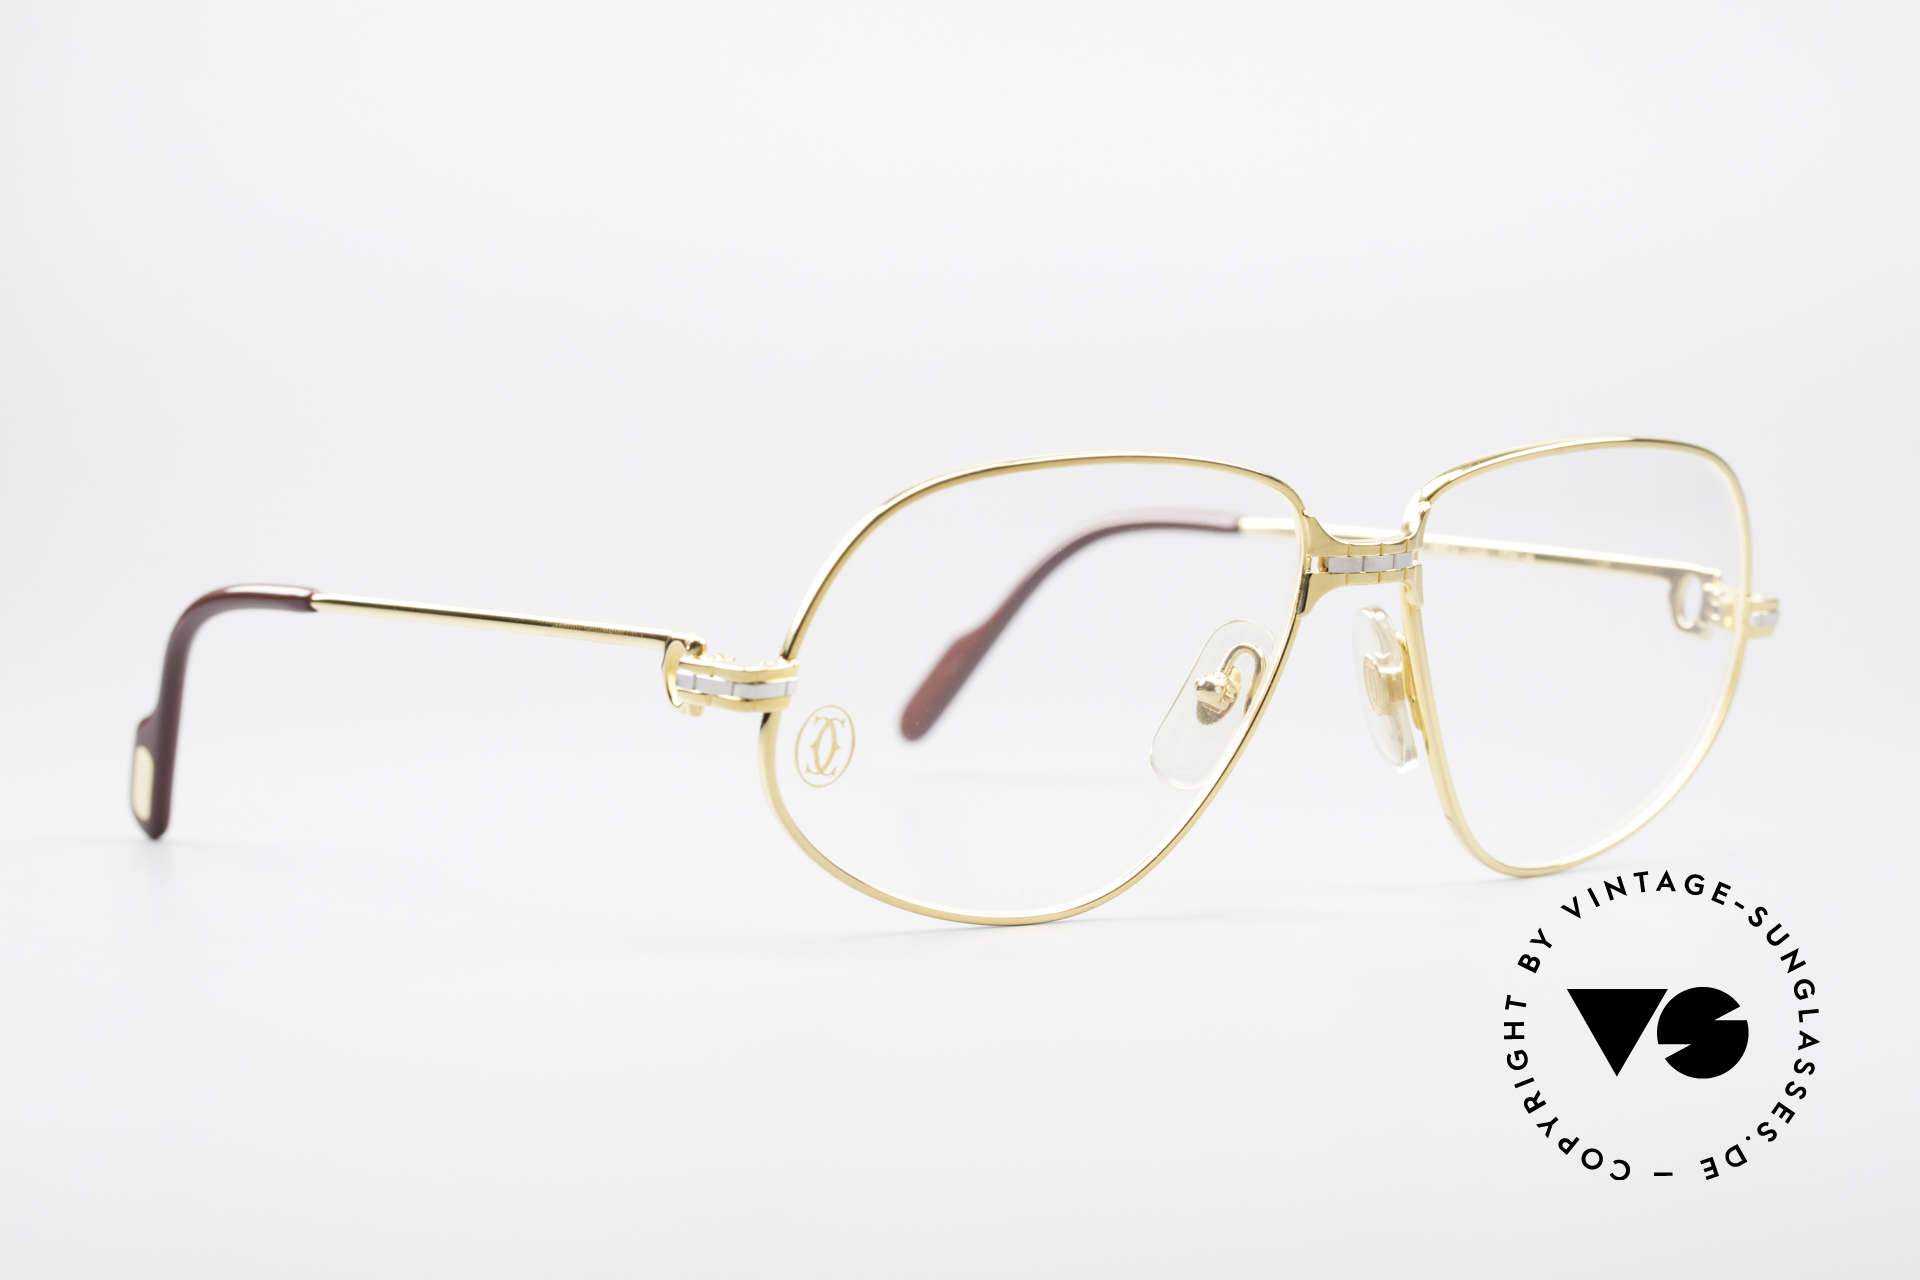 """Cartier Panthere G.M. - M Luxury Eyeglasses, mod. """"Panthère"""" was launched in 1988 and made till 1997, Made for Men"""